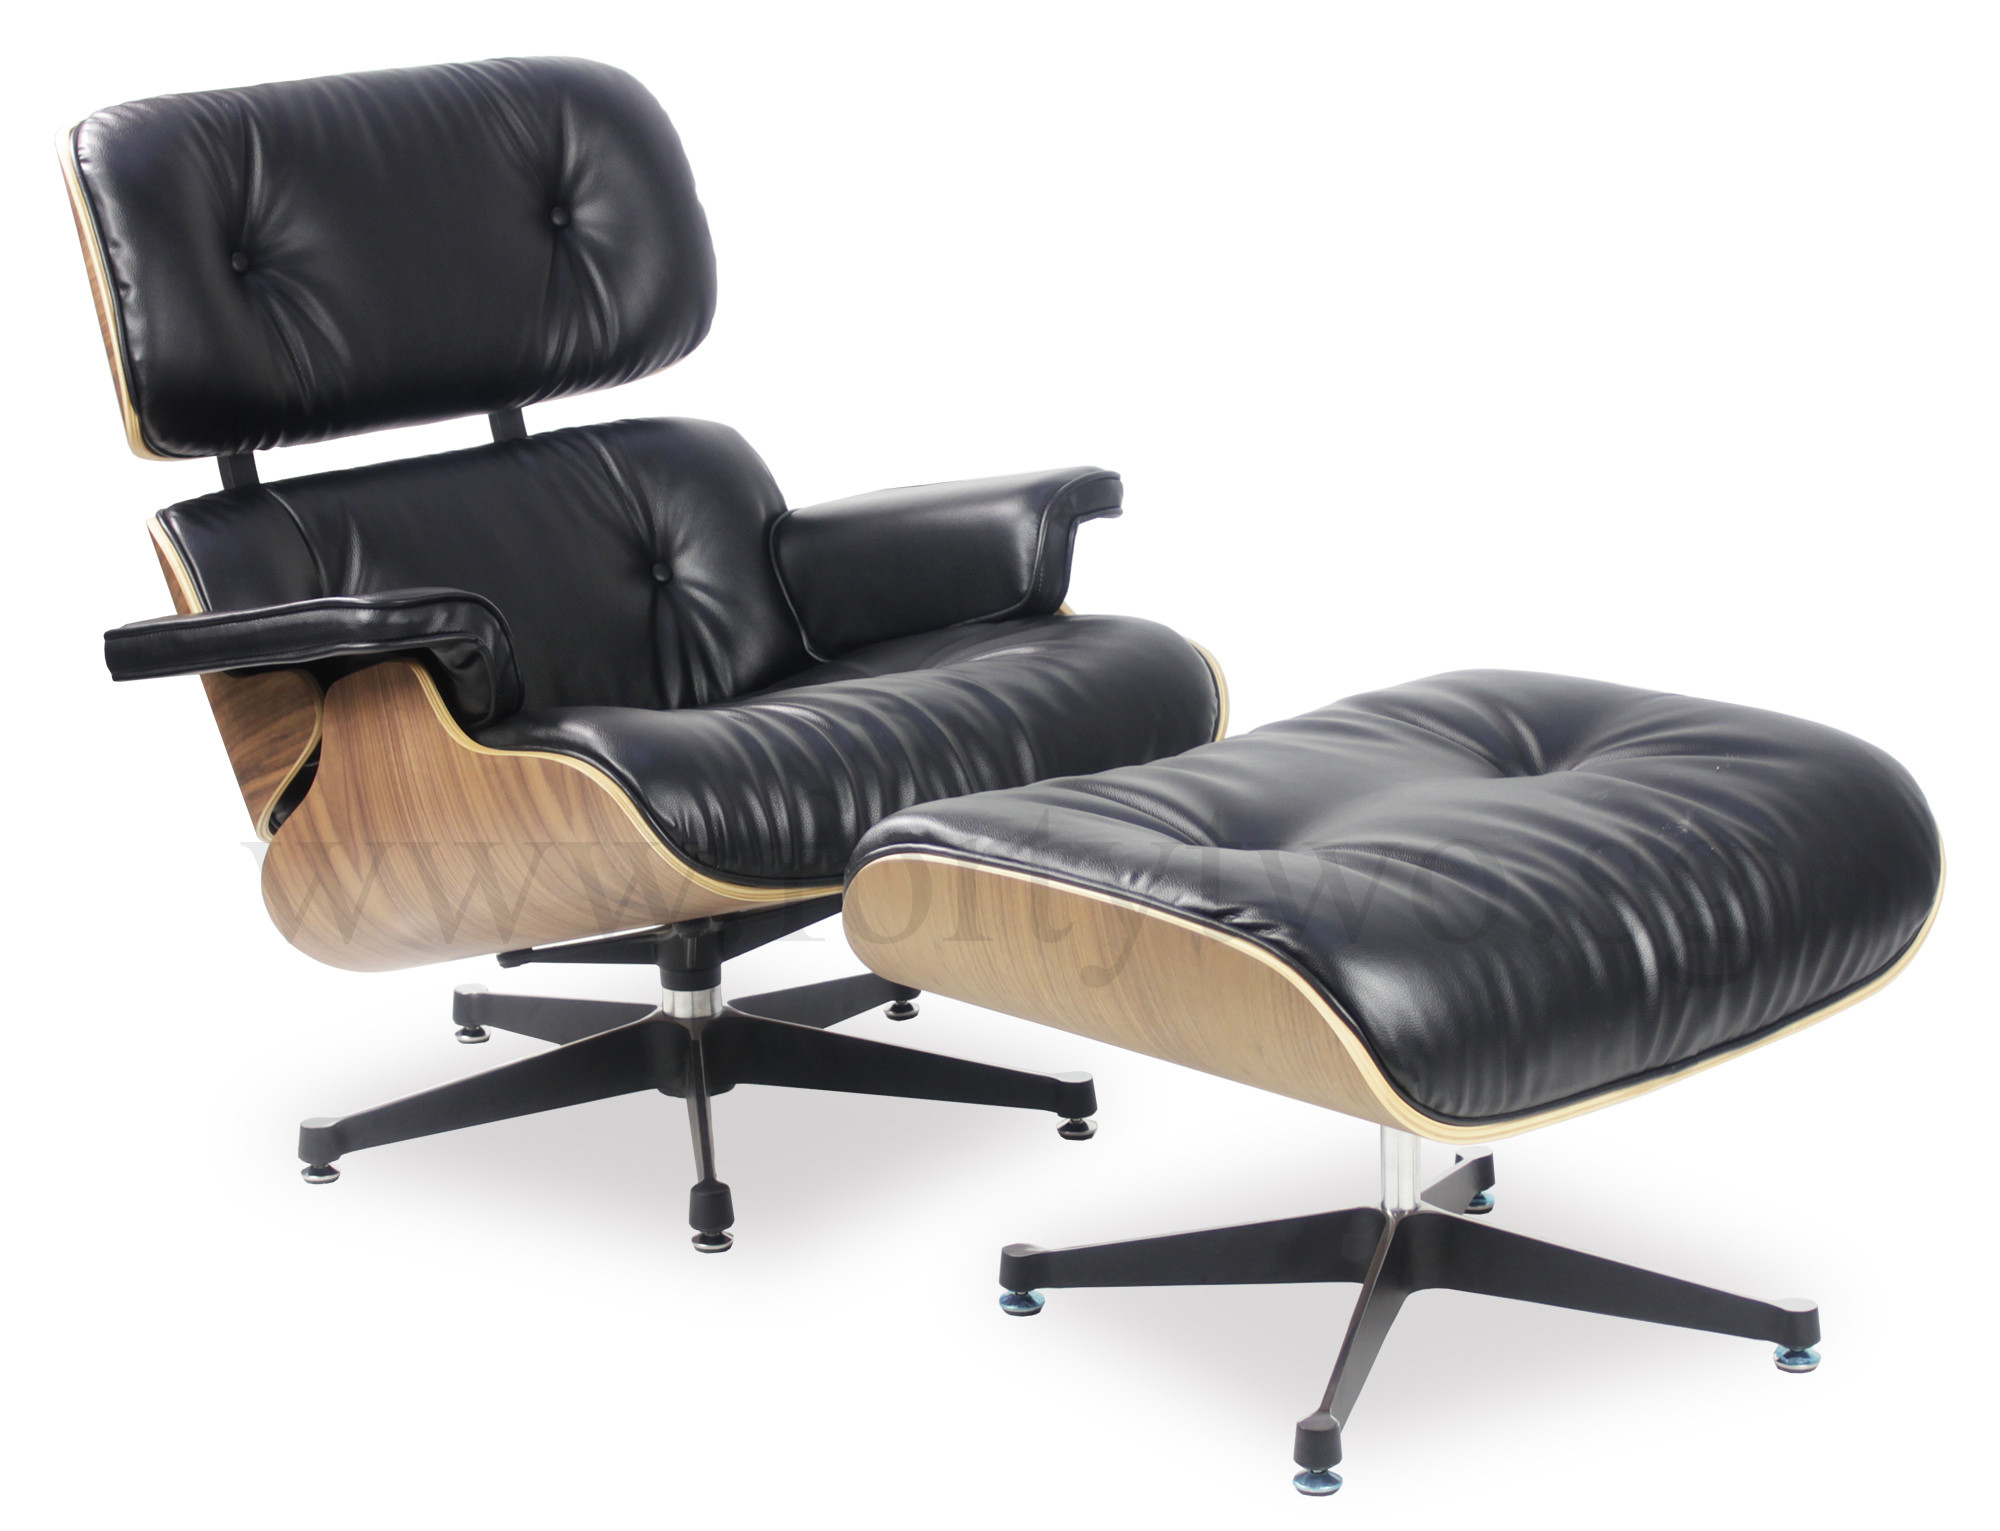 Marvelous Designer Replica Eames Lounge Chair  Black